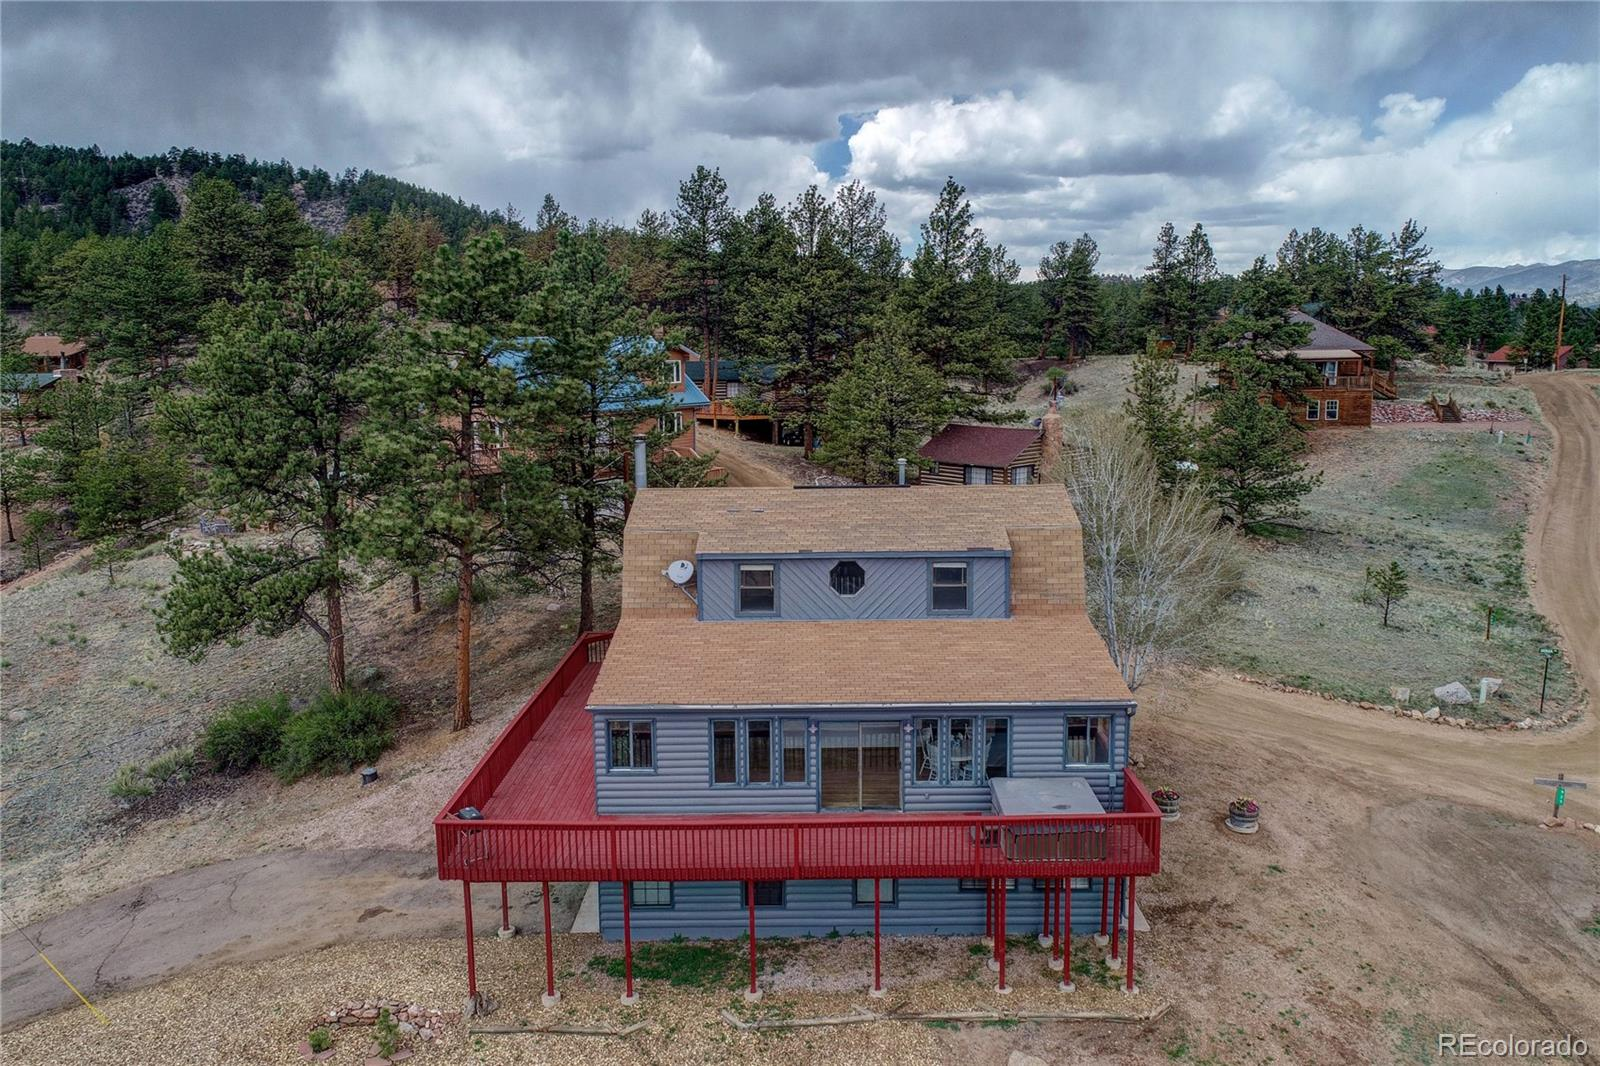 This 3 bed, 3.5 bath home would make the perfect vacation property or permanent residence. Amazing views of Pikes Peak can be enjoyed from the large deck. Separate entrance downstairs makes for a great investment opportunity. HOA dues include water, trash, use of the community building, private fishing and road maintenance in this gated community.  The subdivision backs up to Pike National Forest with several hiking trails available.  Eleven Mile Ranch is  just outside the entrance to Eleven Mile Canyon with gold medal fishing waters, hiking trails and camping. Several ATV trails are nearby.  Just over an hour to Breckenridge and 30 min to Woodland Park make this the perfect location.